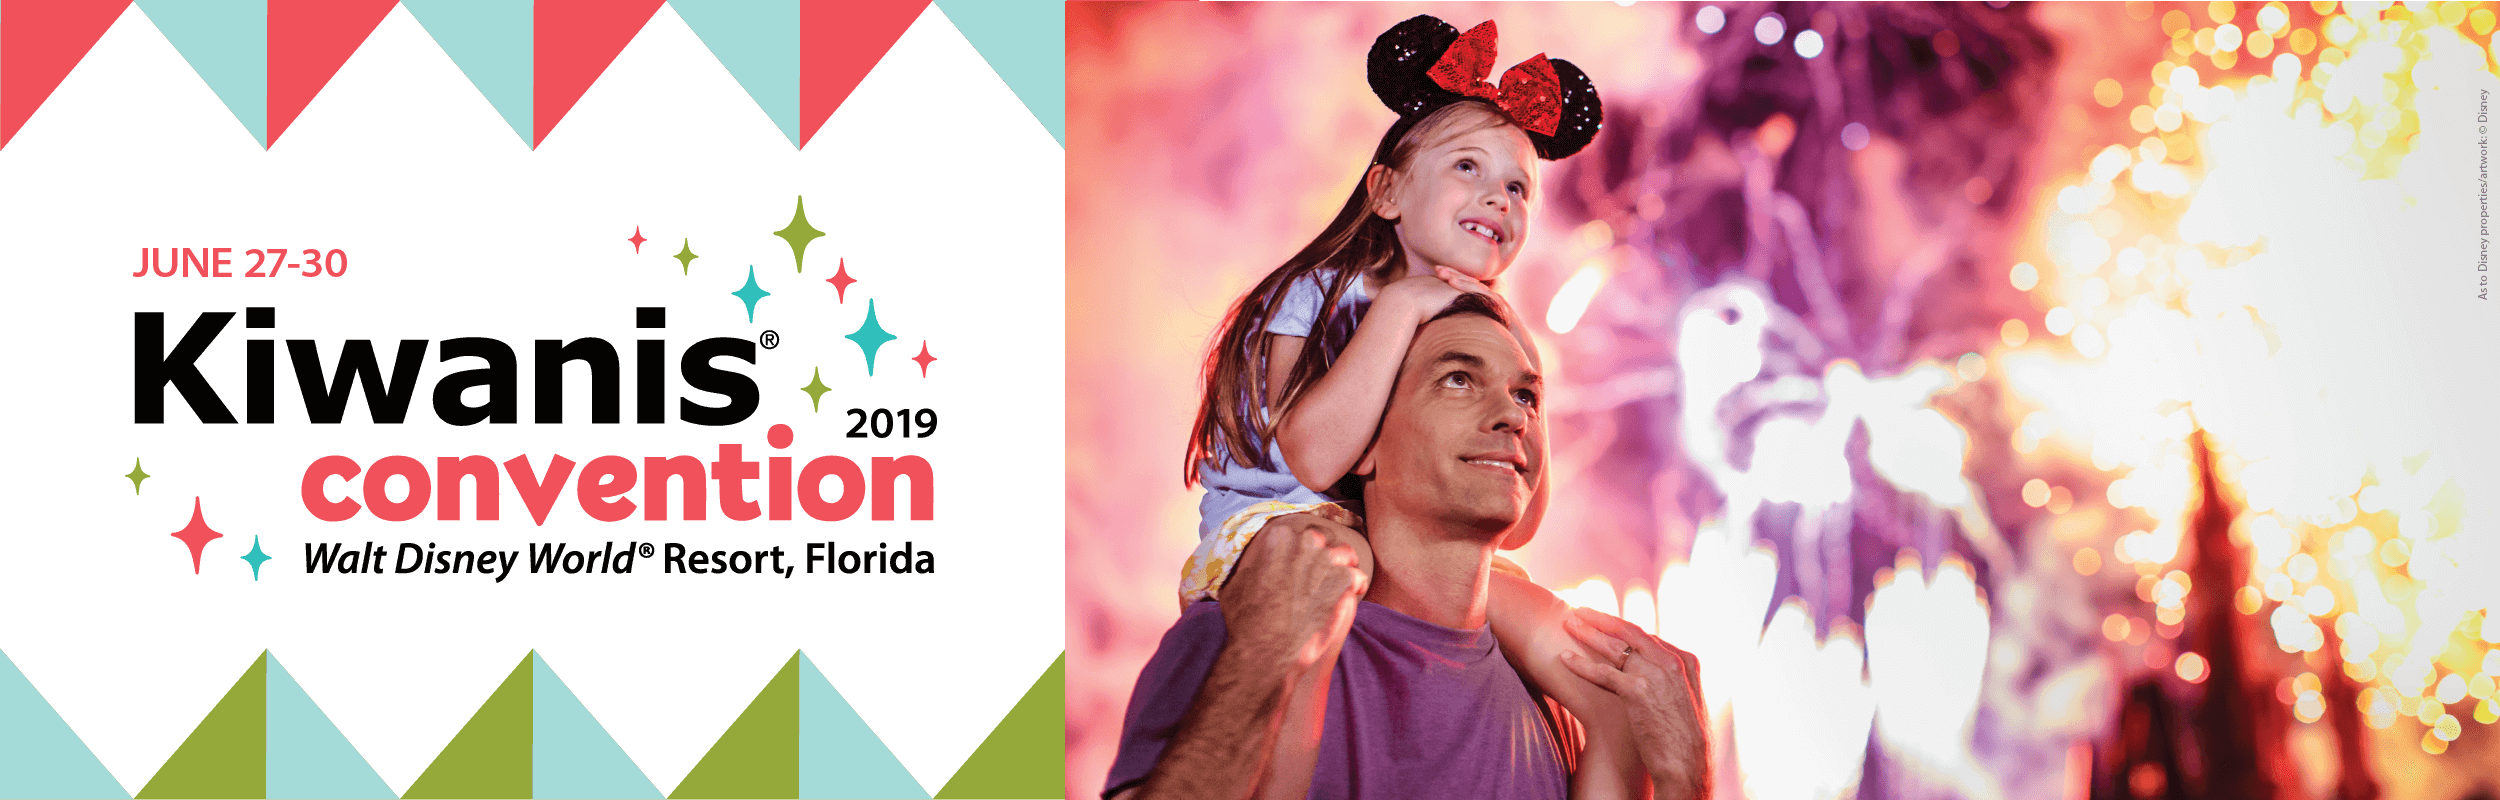 Walt Disney World 2019 Convention